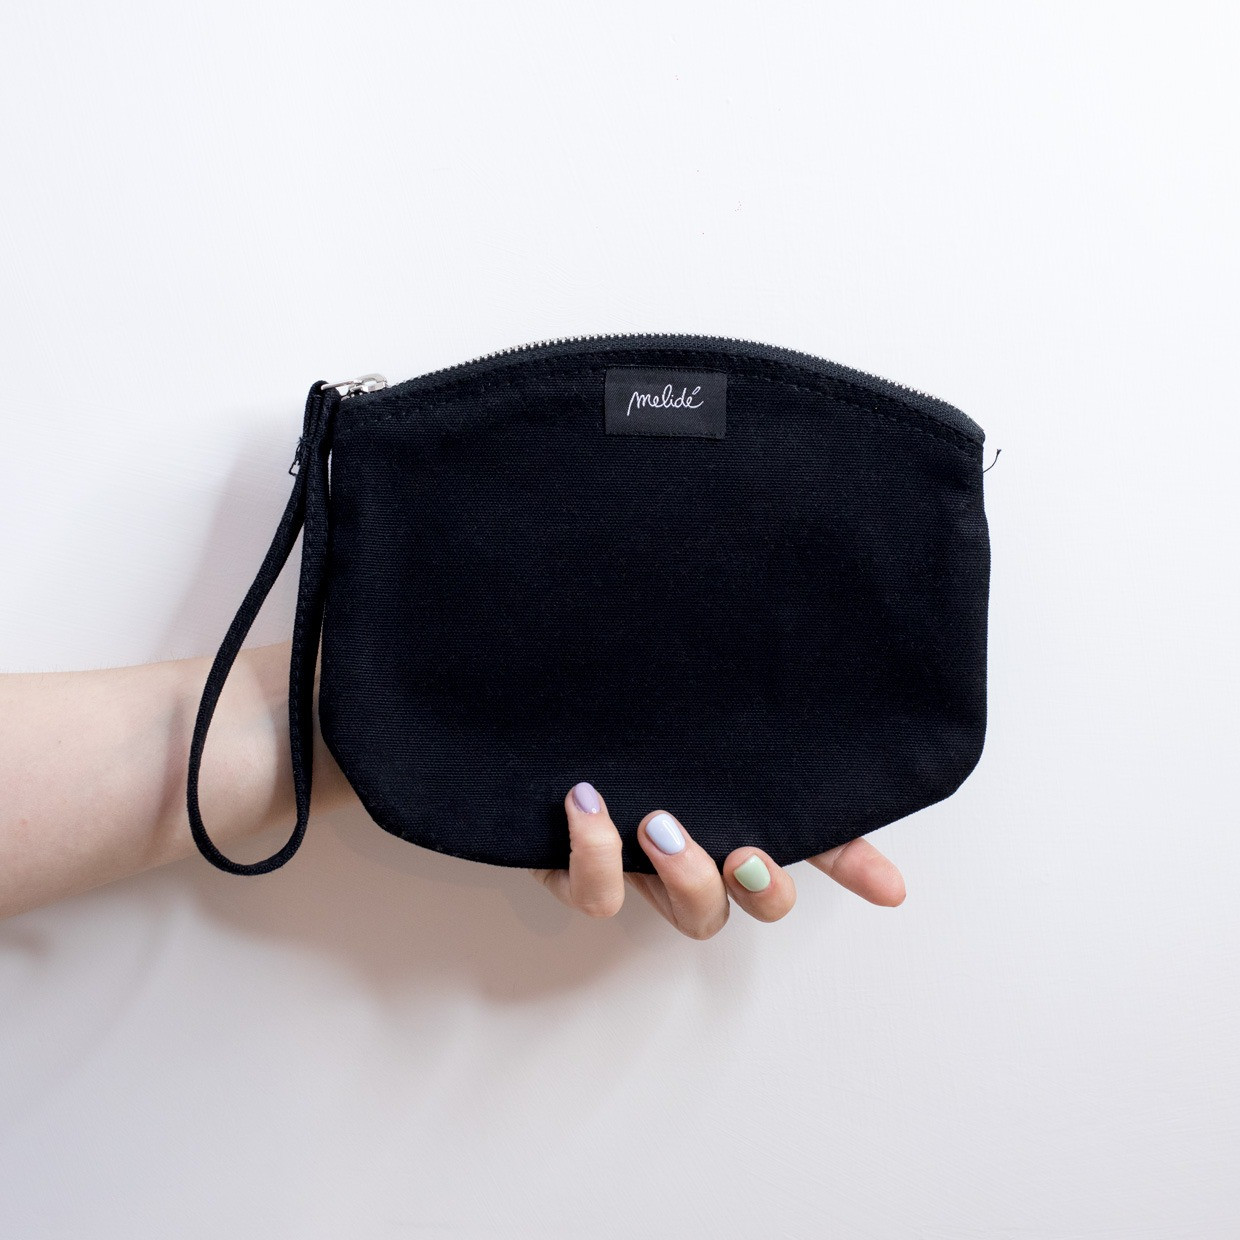 The ZIPPED POUCH M - Say my name